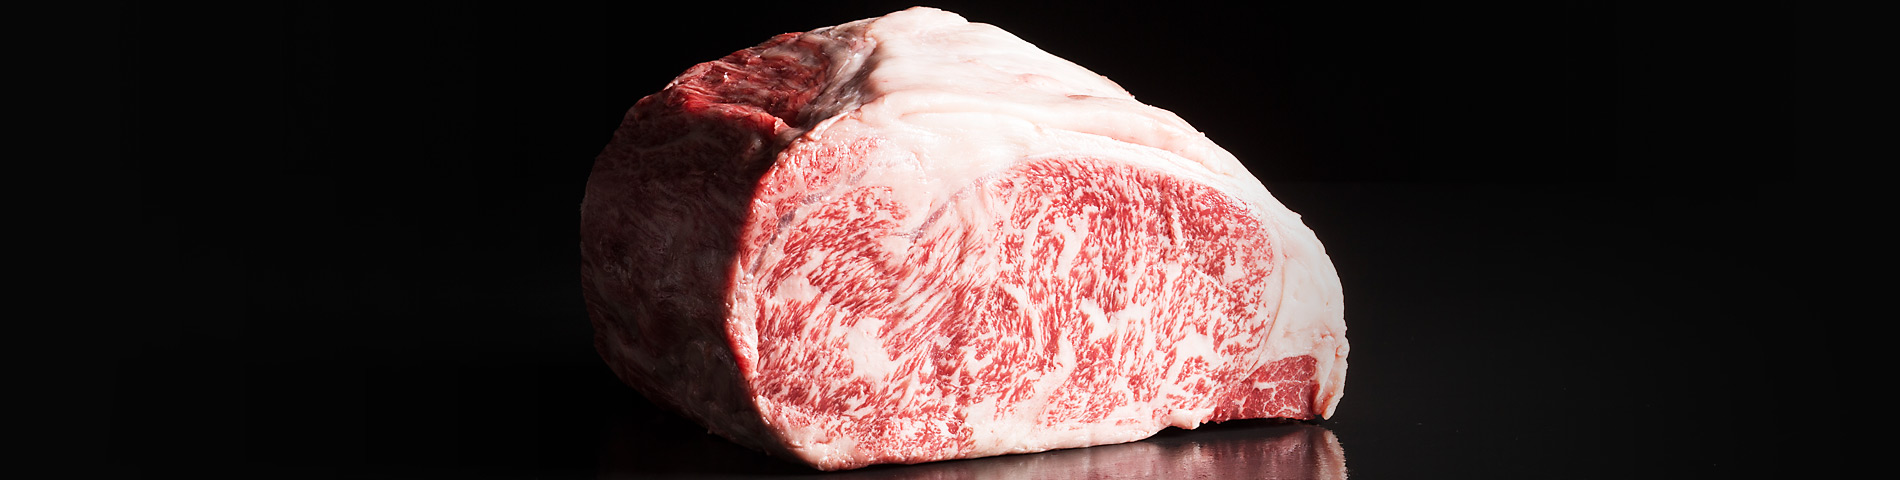 Wagyu Beef Cube Roll - Best Beef Image 2018